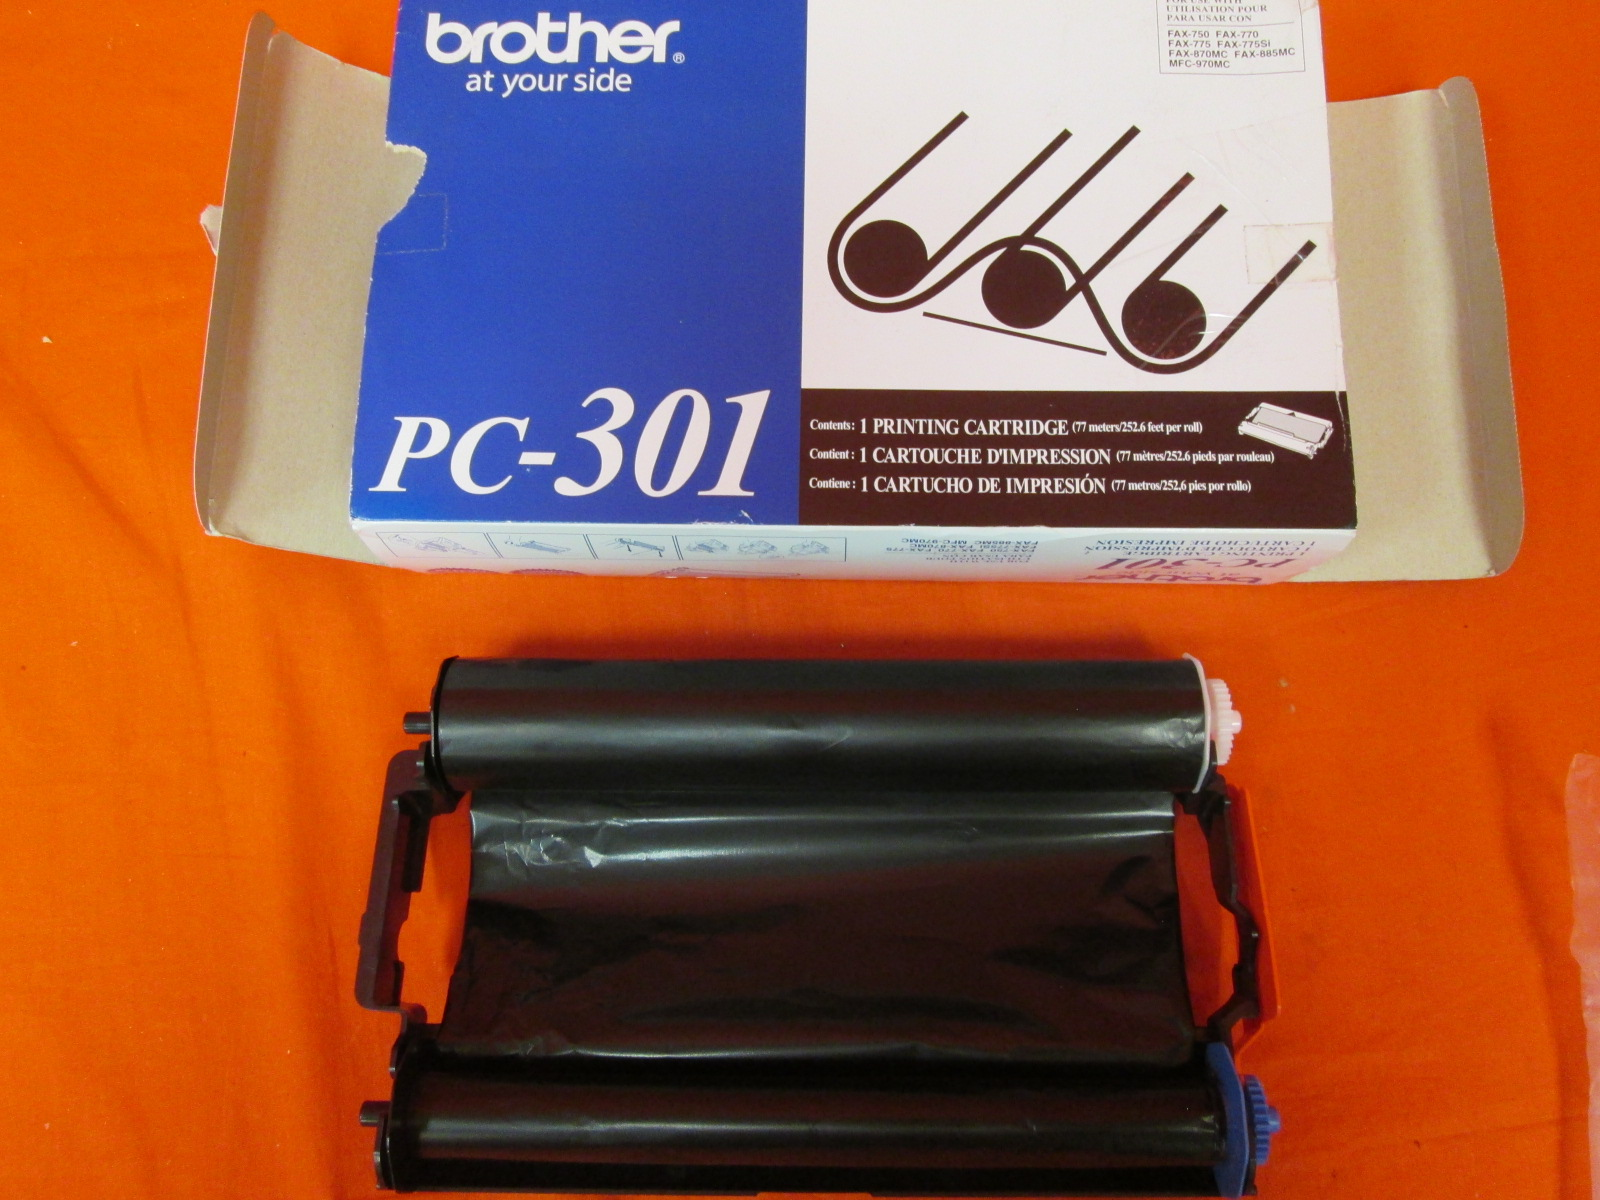 Brother PC-301 Fax/Printer Cartridge Ink